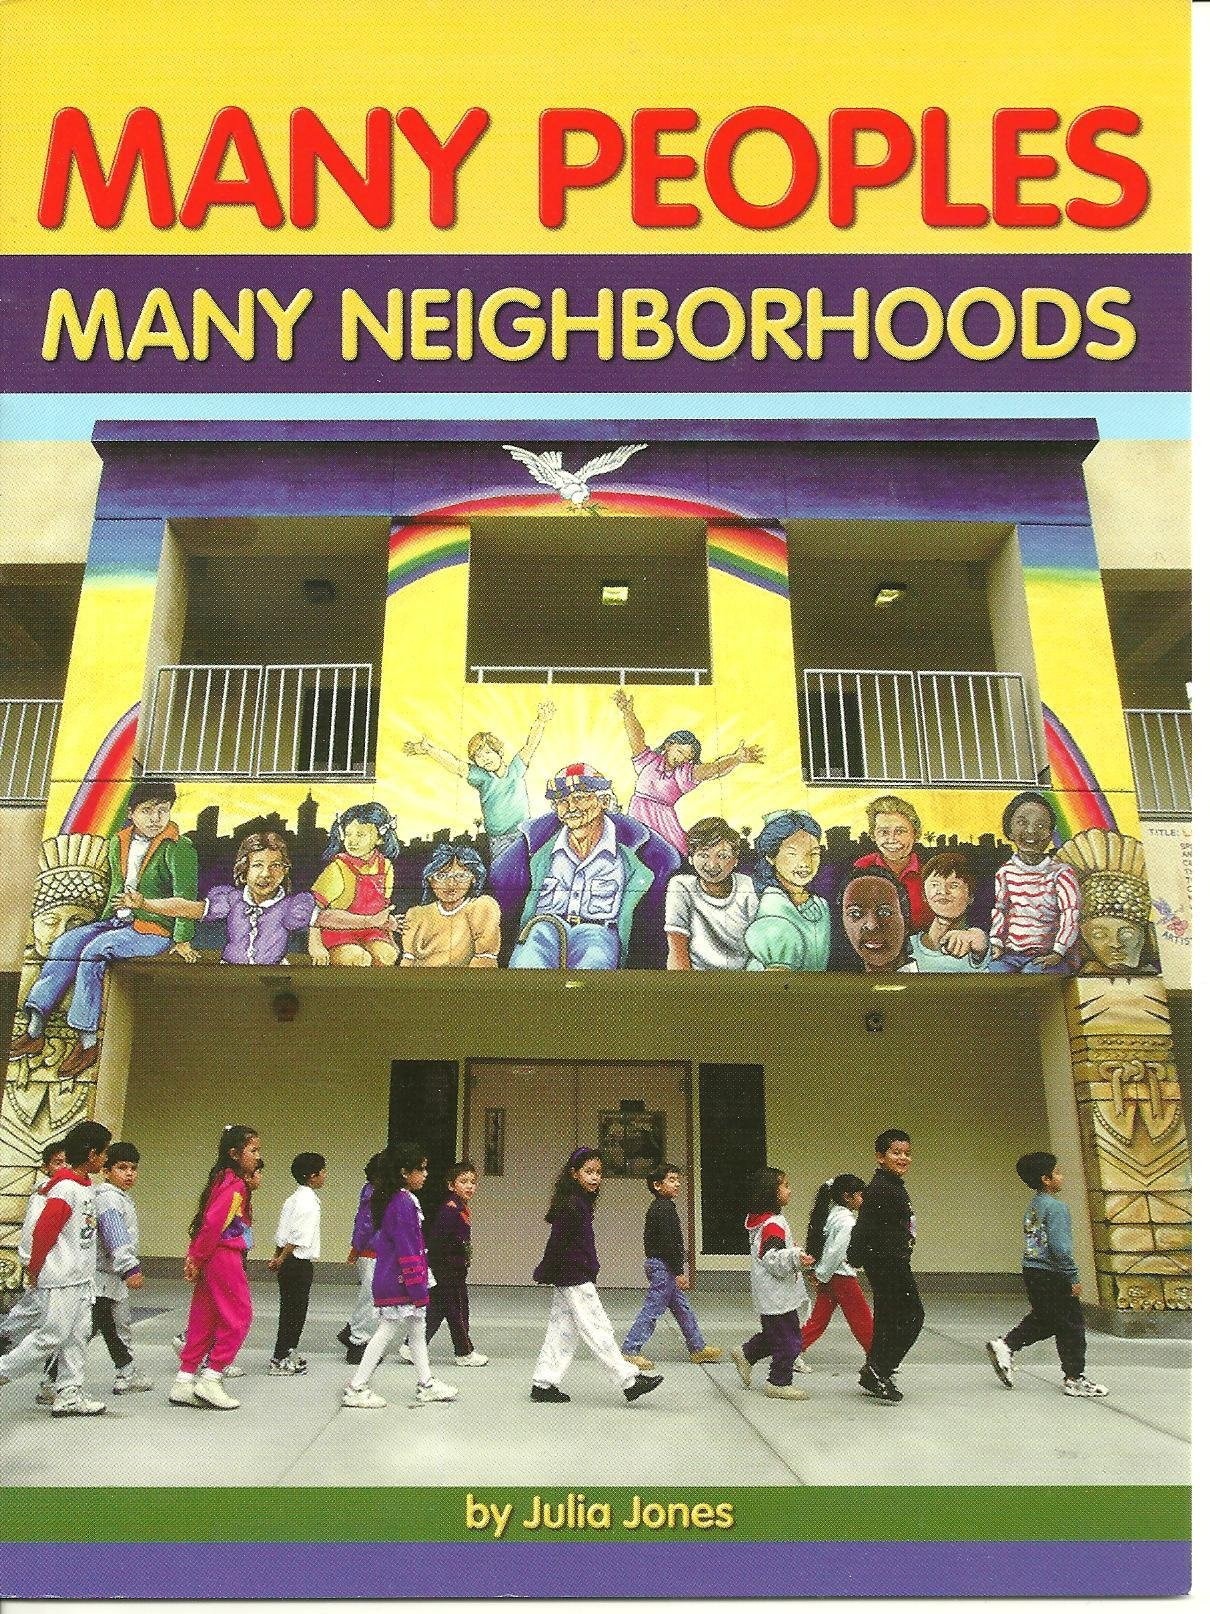 Download Houghton Mifflin Social Studies California: On Level Independent Book Unit 5 Level 4 Many Peoples, Many Neighborhoods pdf epub